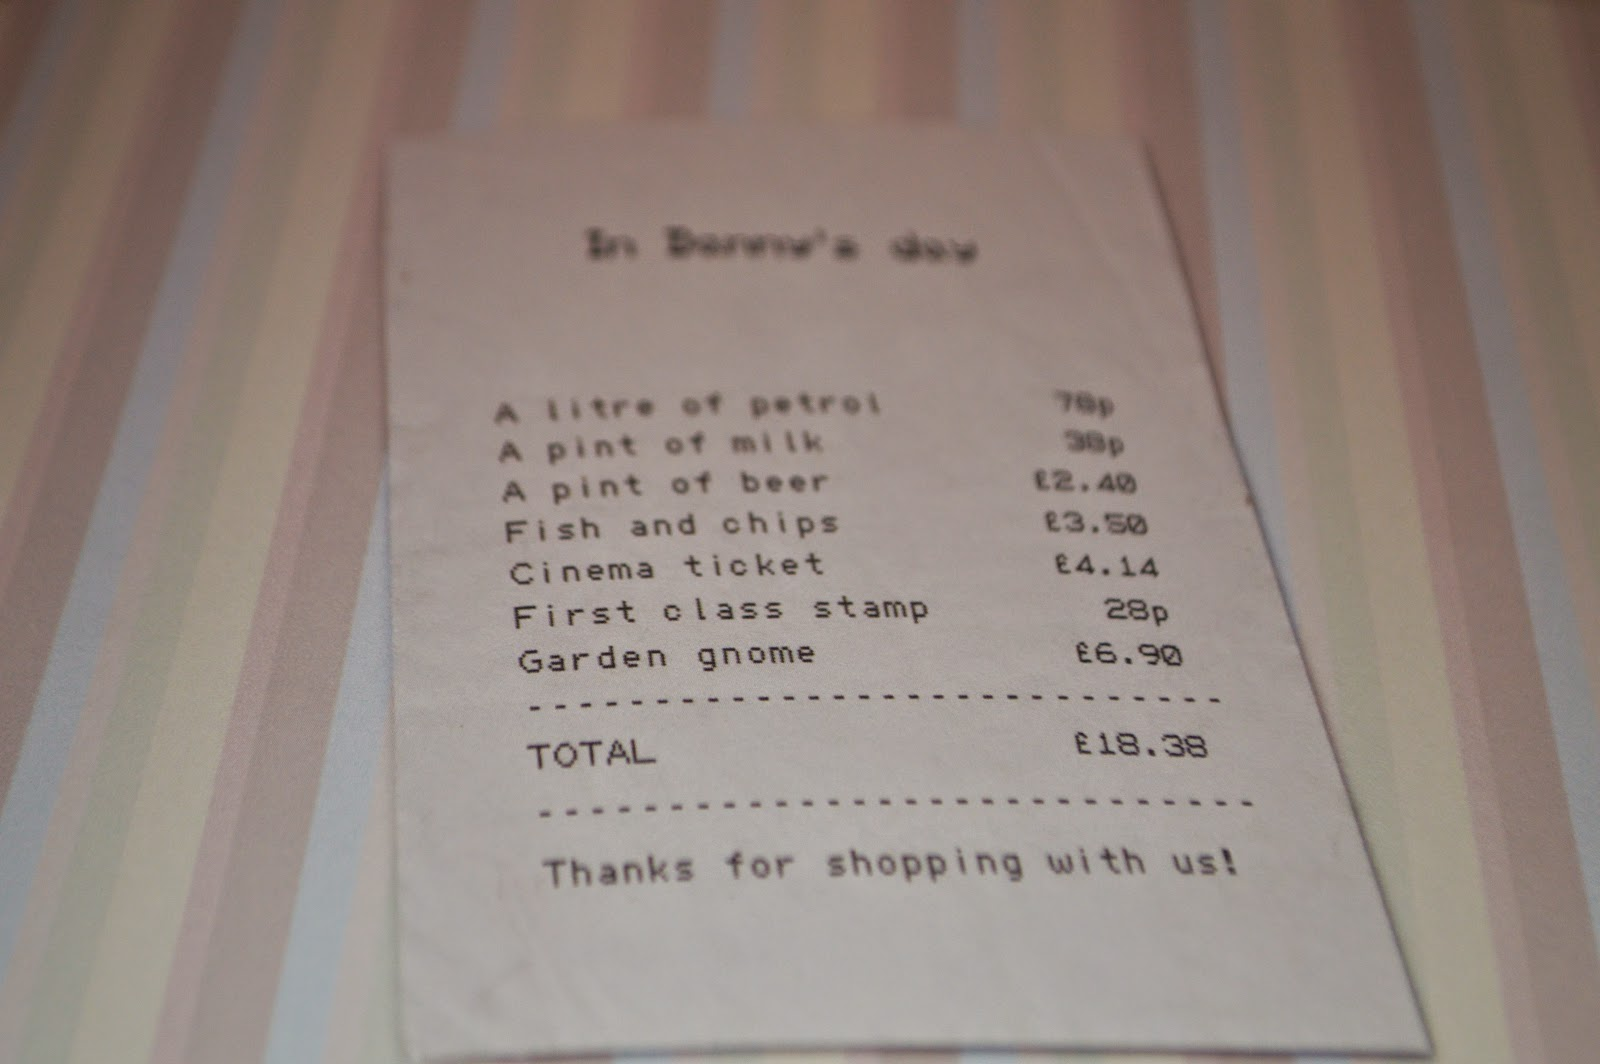 The Book of Everyone Danny Review Age UK Christmas Gift Receipt